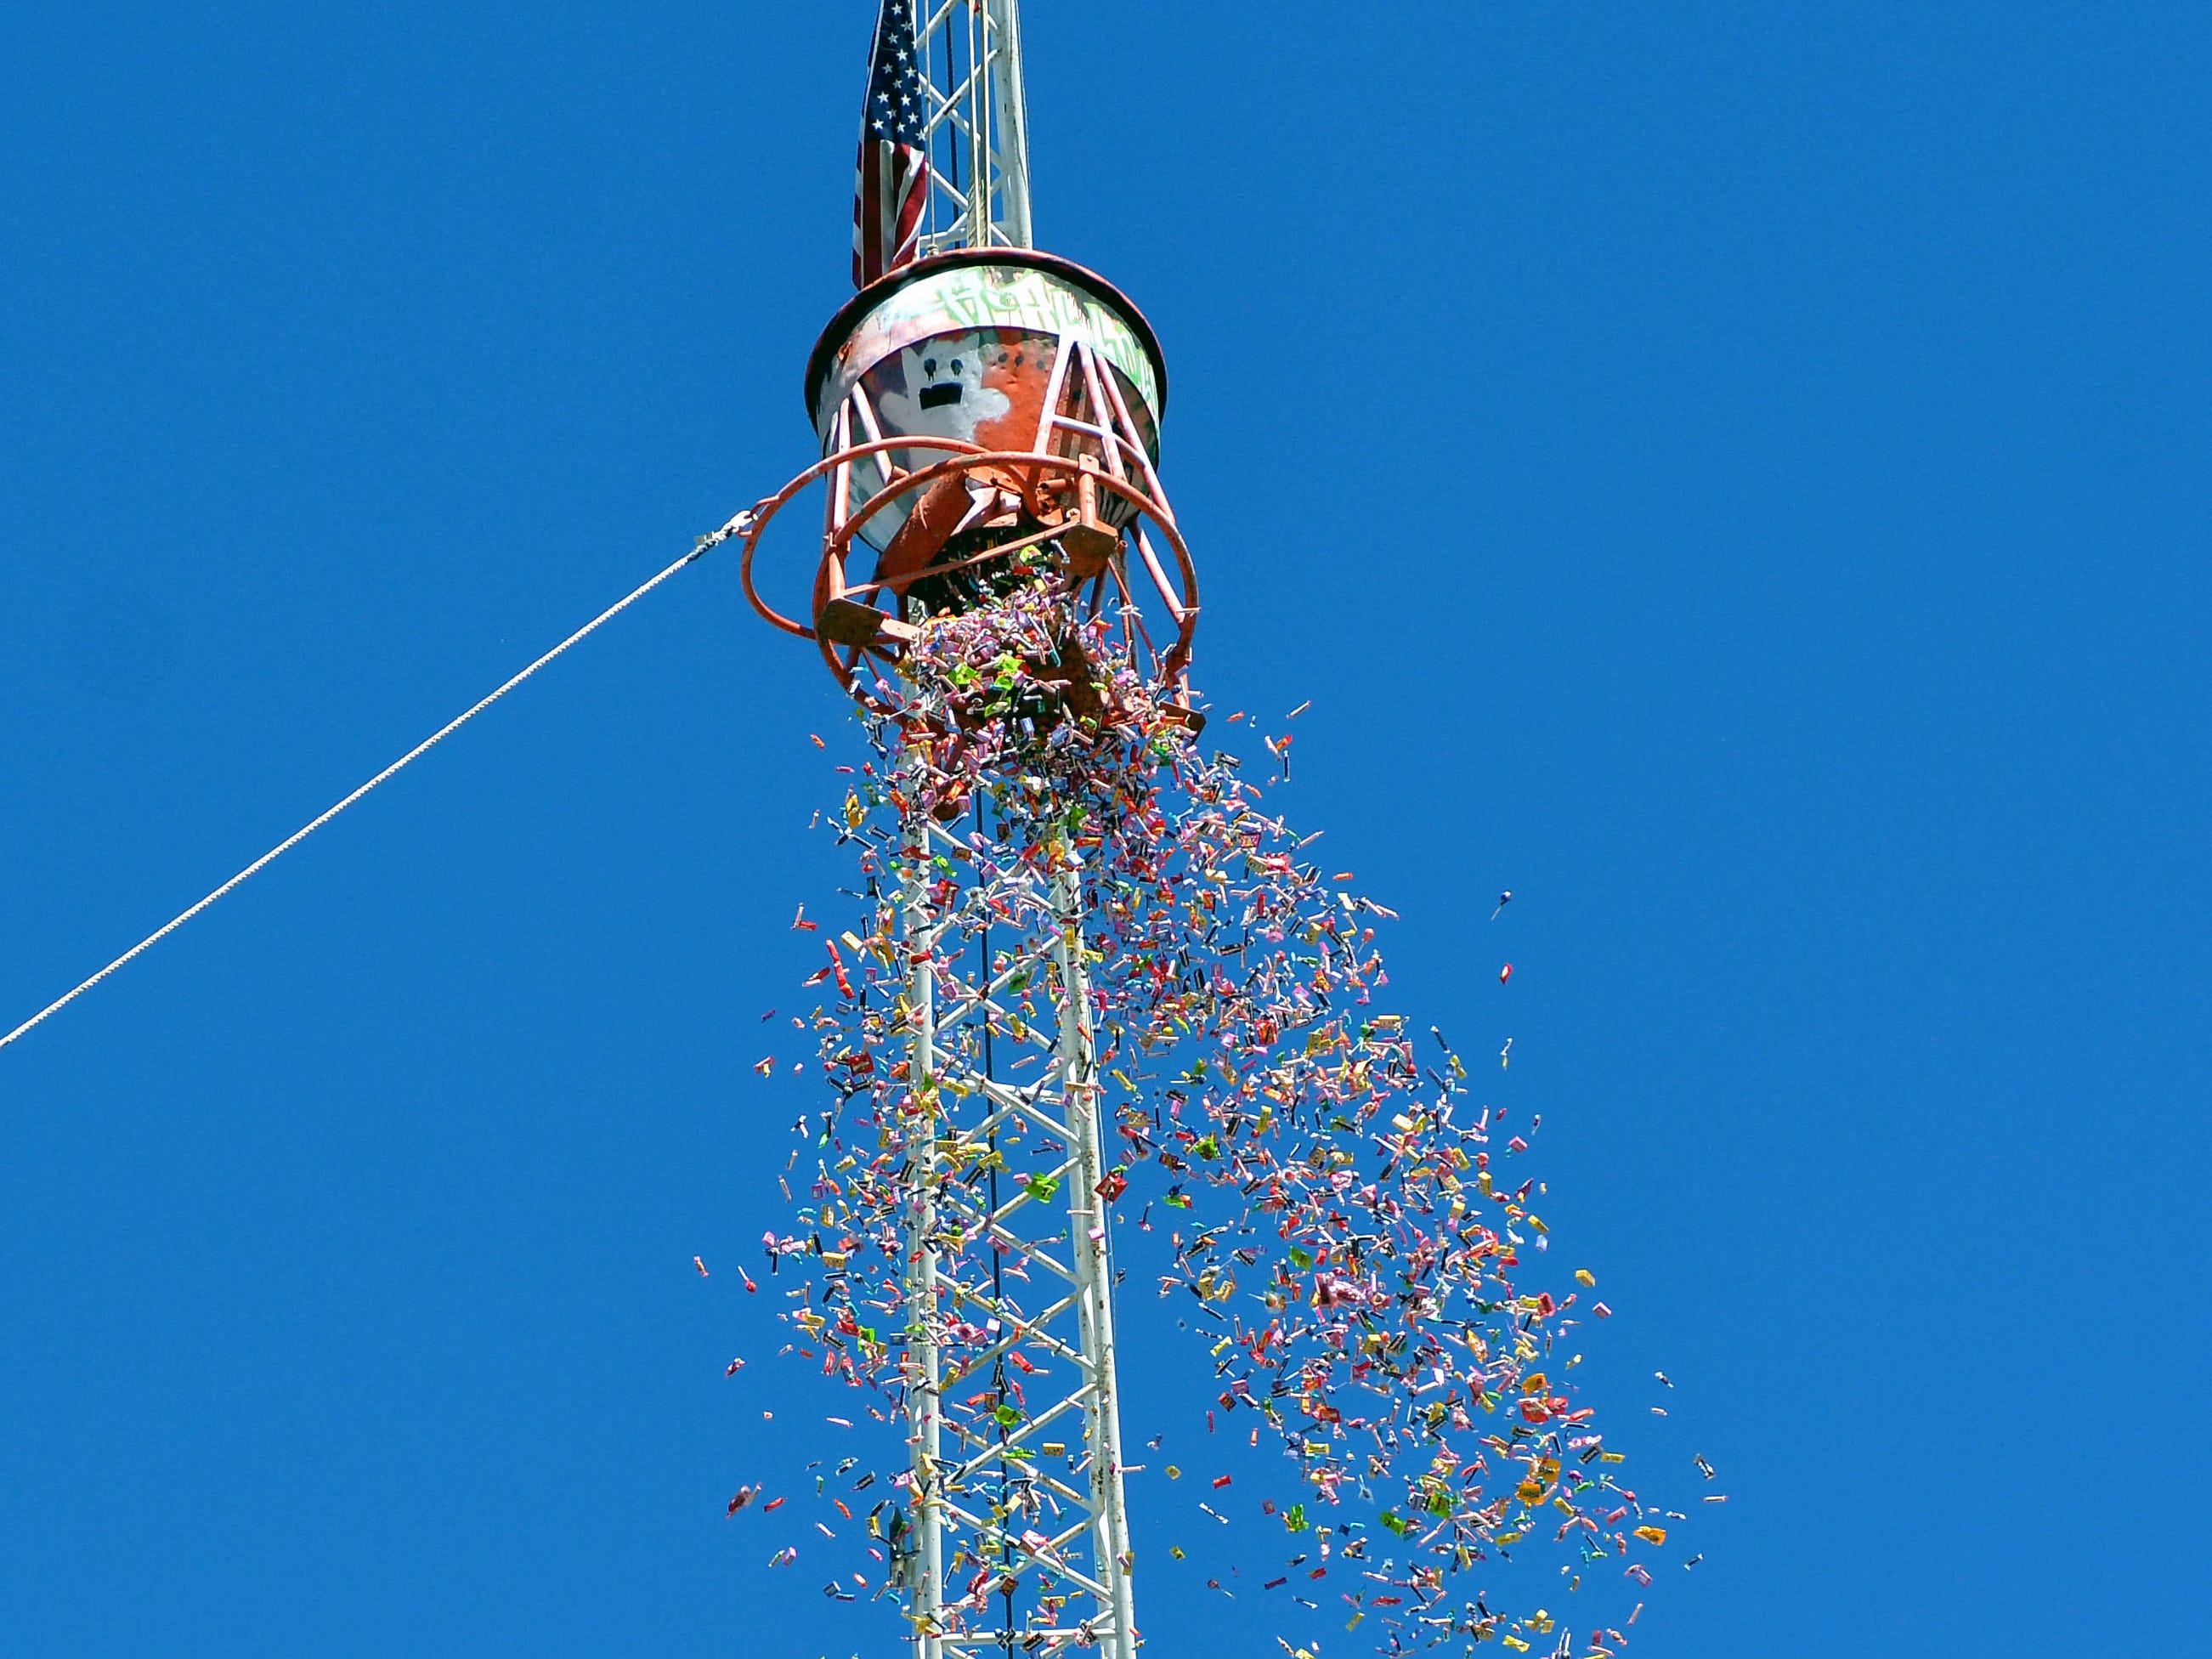 Cranes provided by Weaver's Welding and Crane Service drop candy from 70 feet up in the air during the 14th annual Great Pumpkin Candy Drop, held Sunday, Oct, 28 at Maag Park.